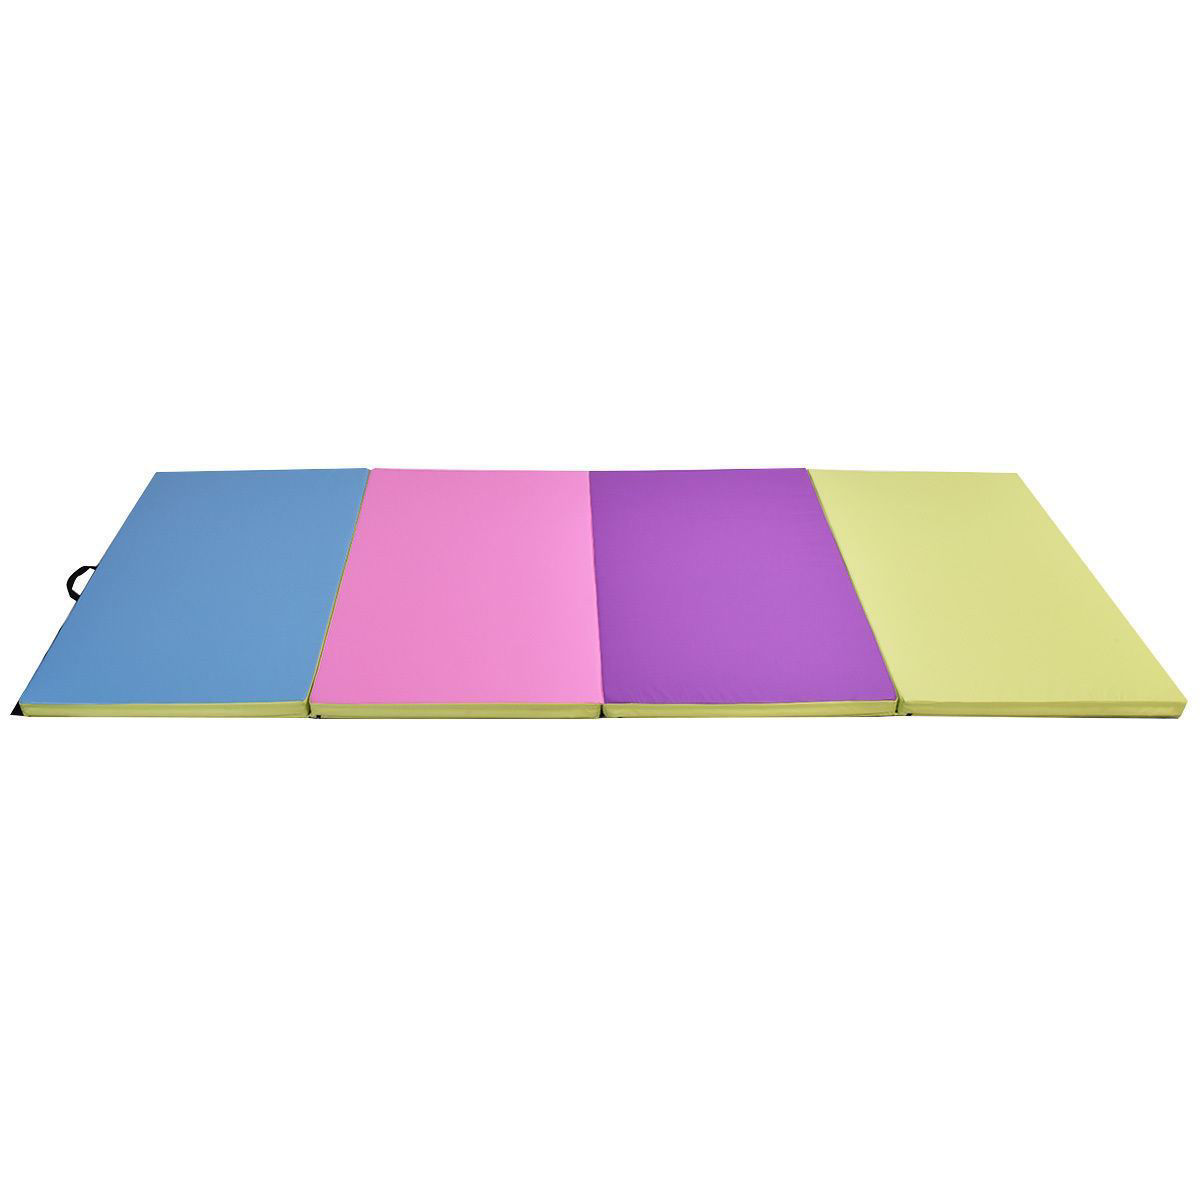 Picture of Folding Gymnastics Mat Multi-Color - 4' x 10' x 2""